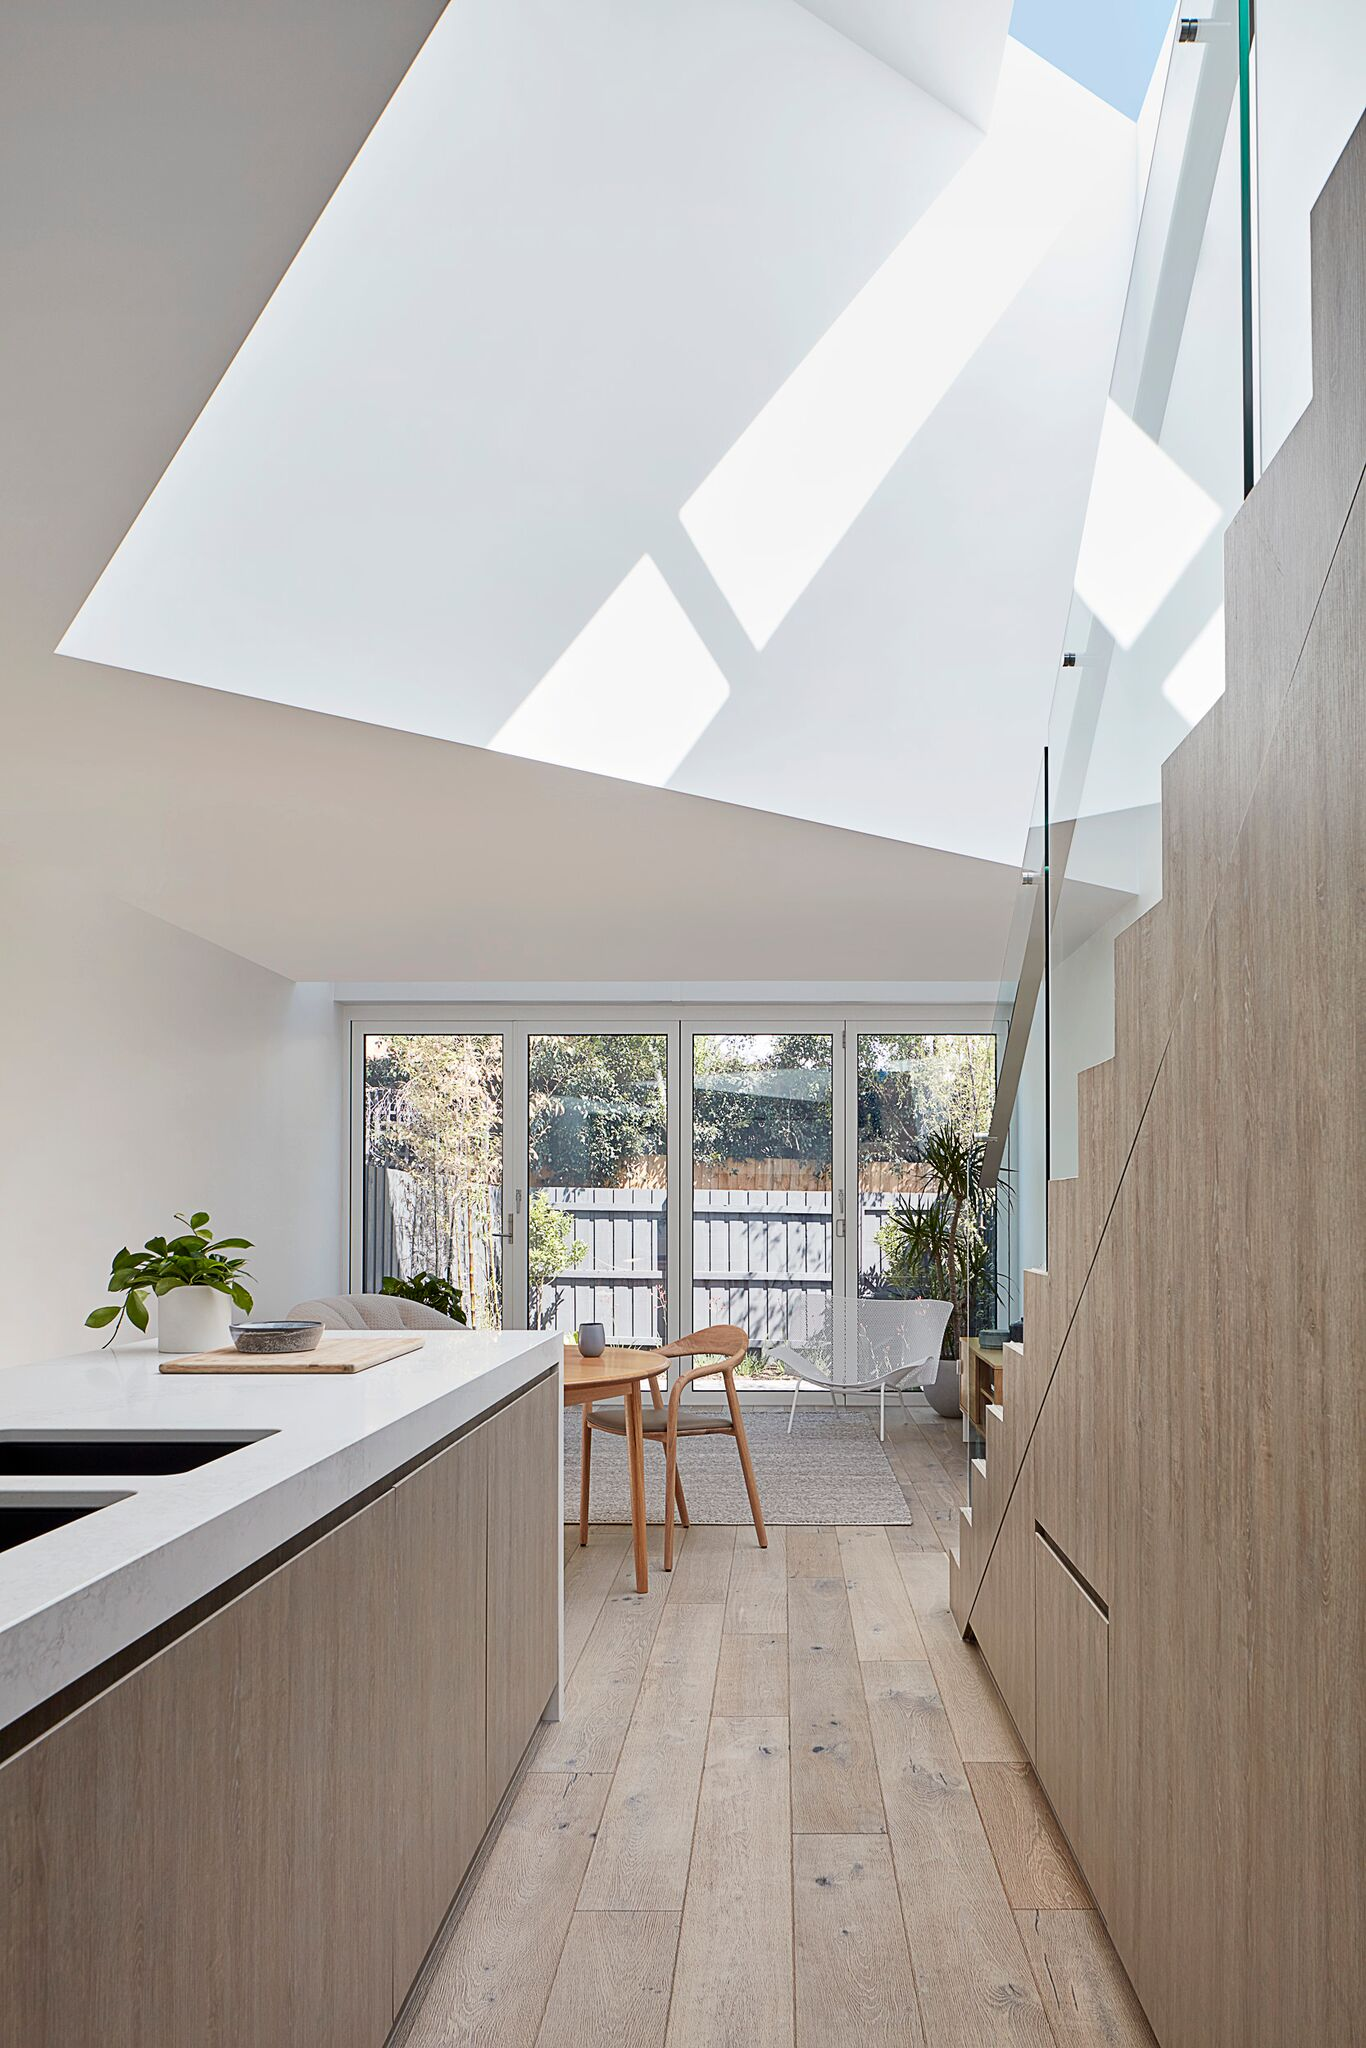 Gallery Of Oban Street By Mittelman Amsellem Architects Local Australian Architecture & Design South Yarra, Melbourne Image 4